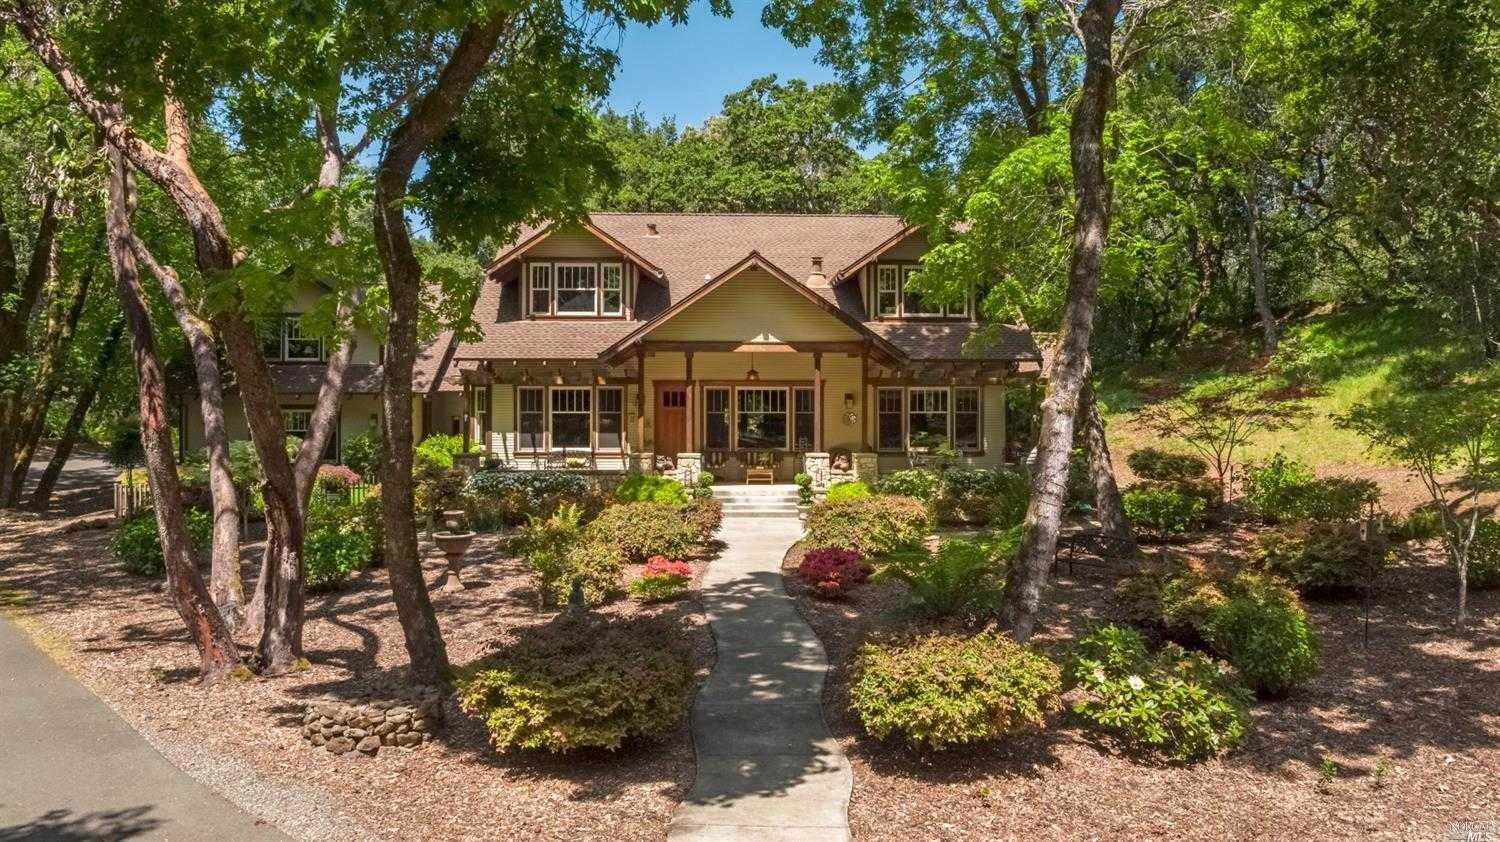 $3,900,000 - 4Br/4Ba -  for Sale in Kenwood